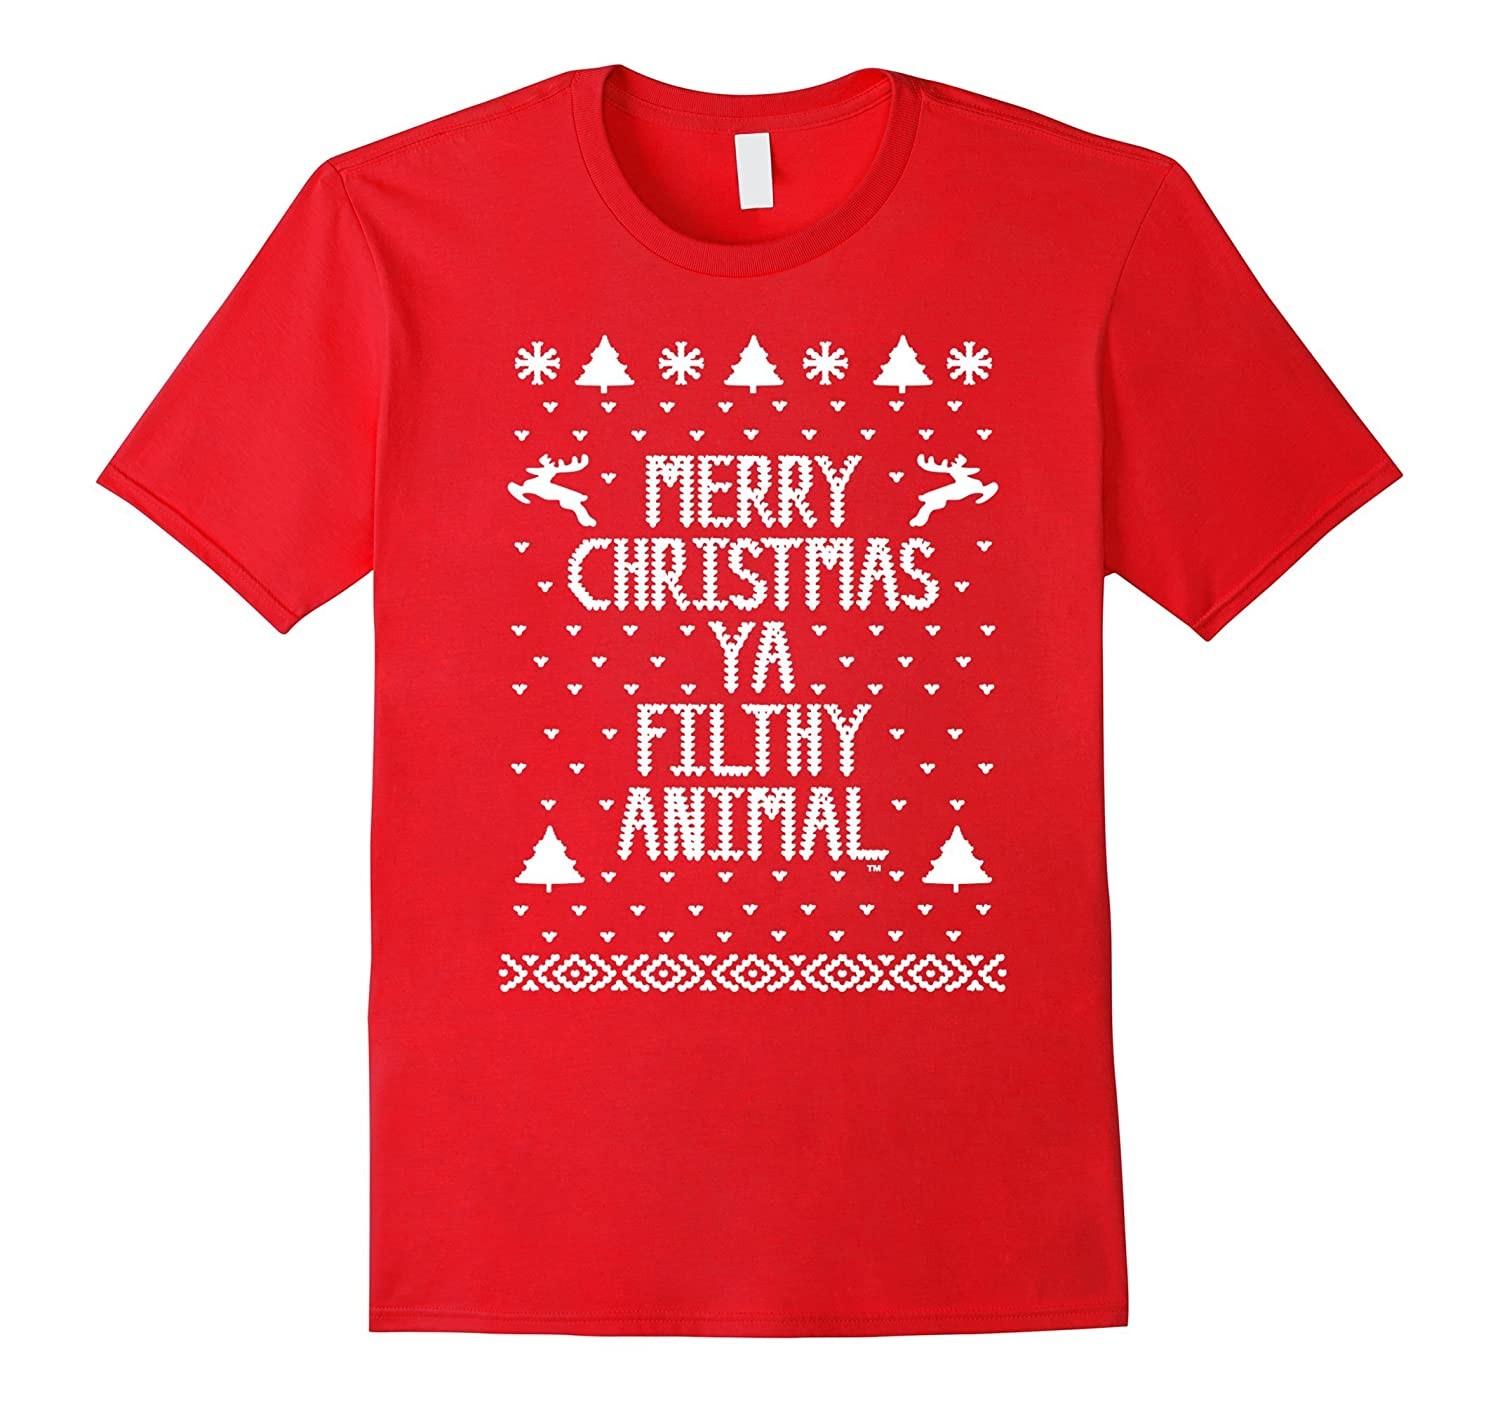 Christmas T-shirt - Merry Christmas Ya Filthy Animal-azvn